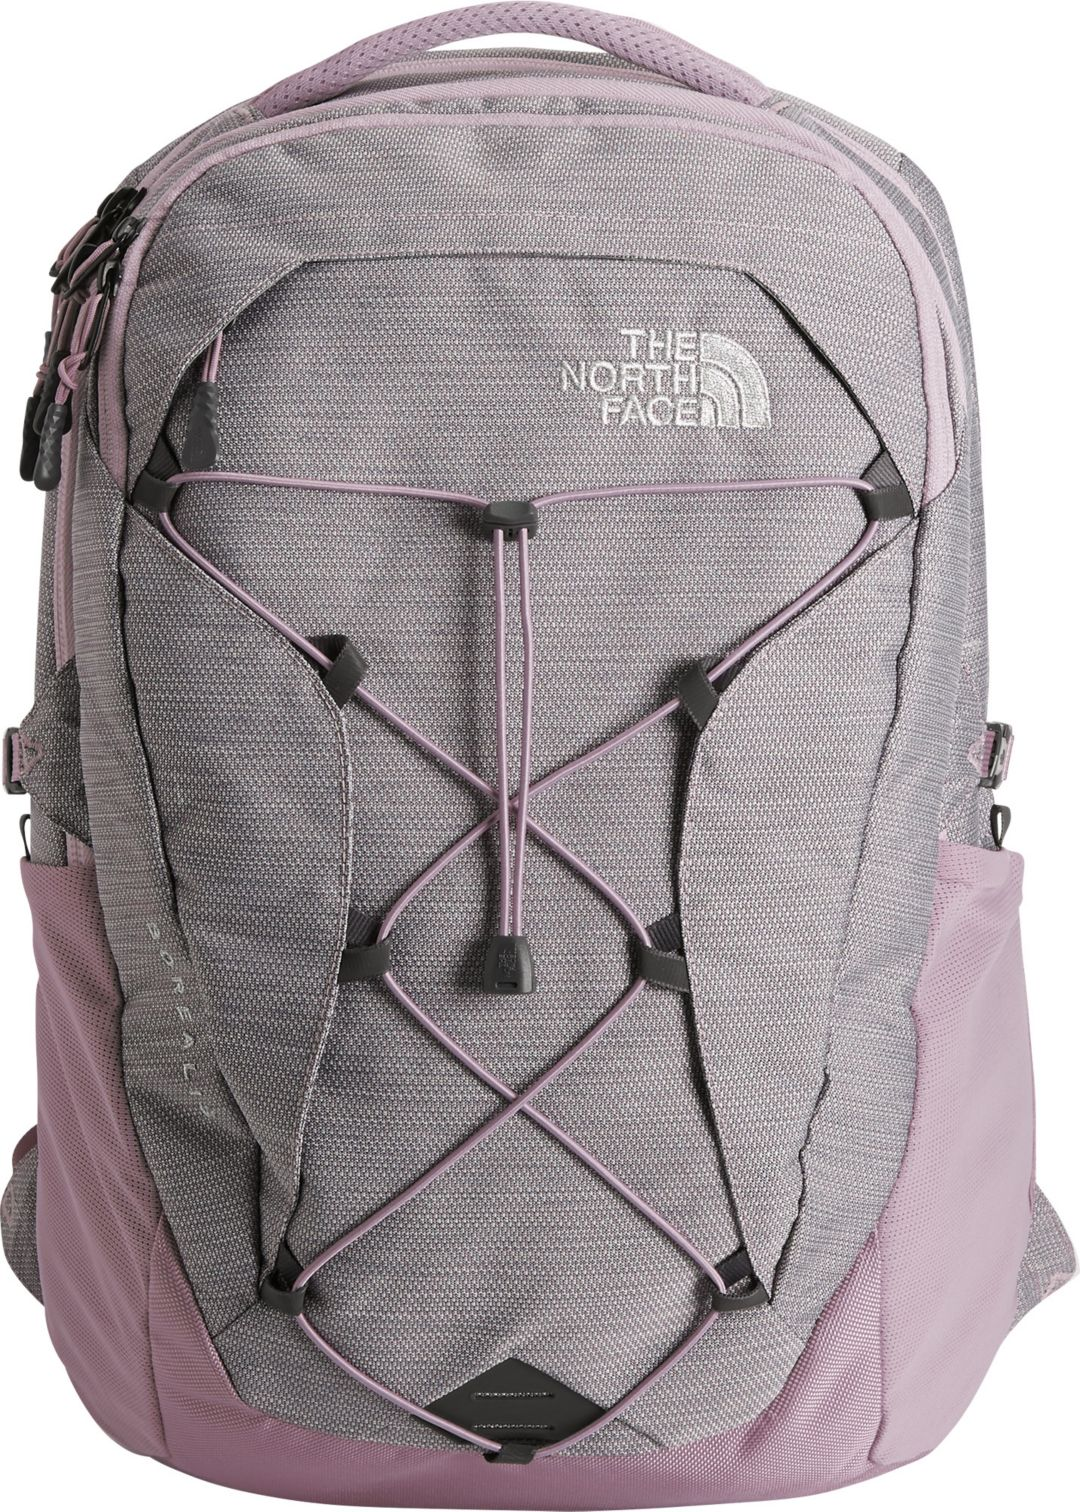 716e1e5b88a The North Face Women's Borealis Luxe Backpack